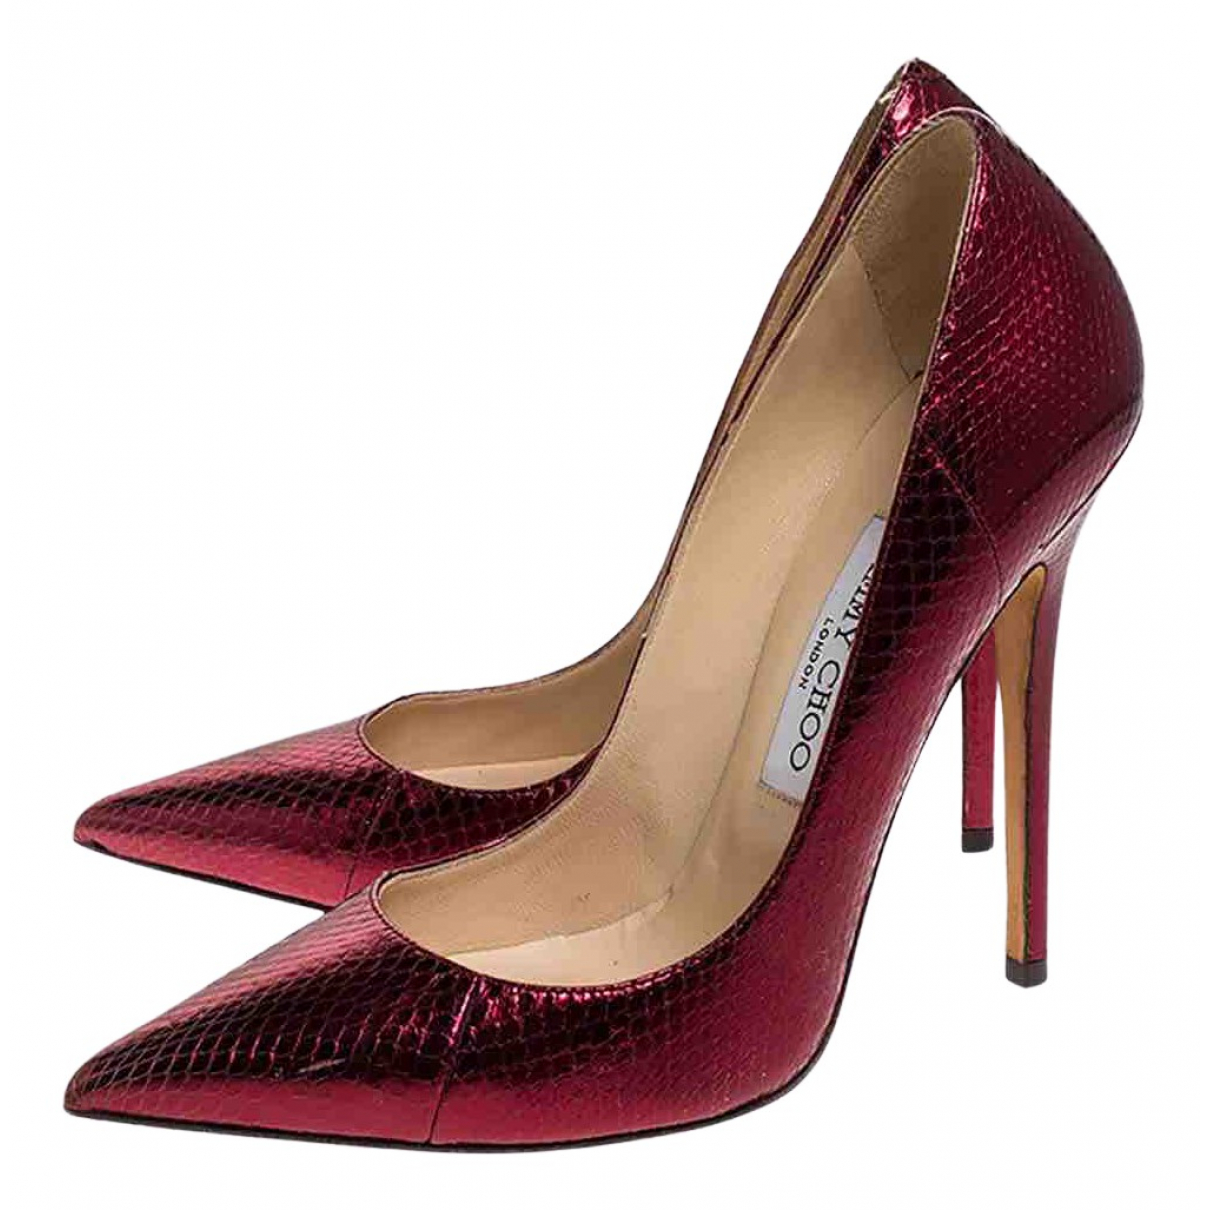 Jimmy Choo Anouk Red Python Heels for Women 38 EU